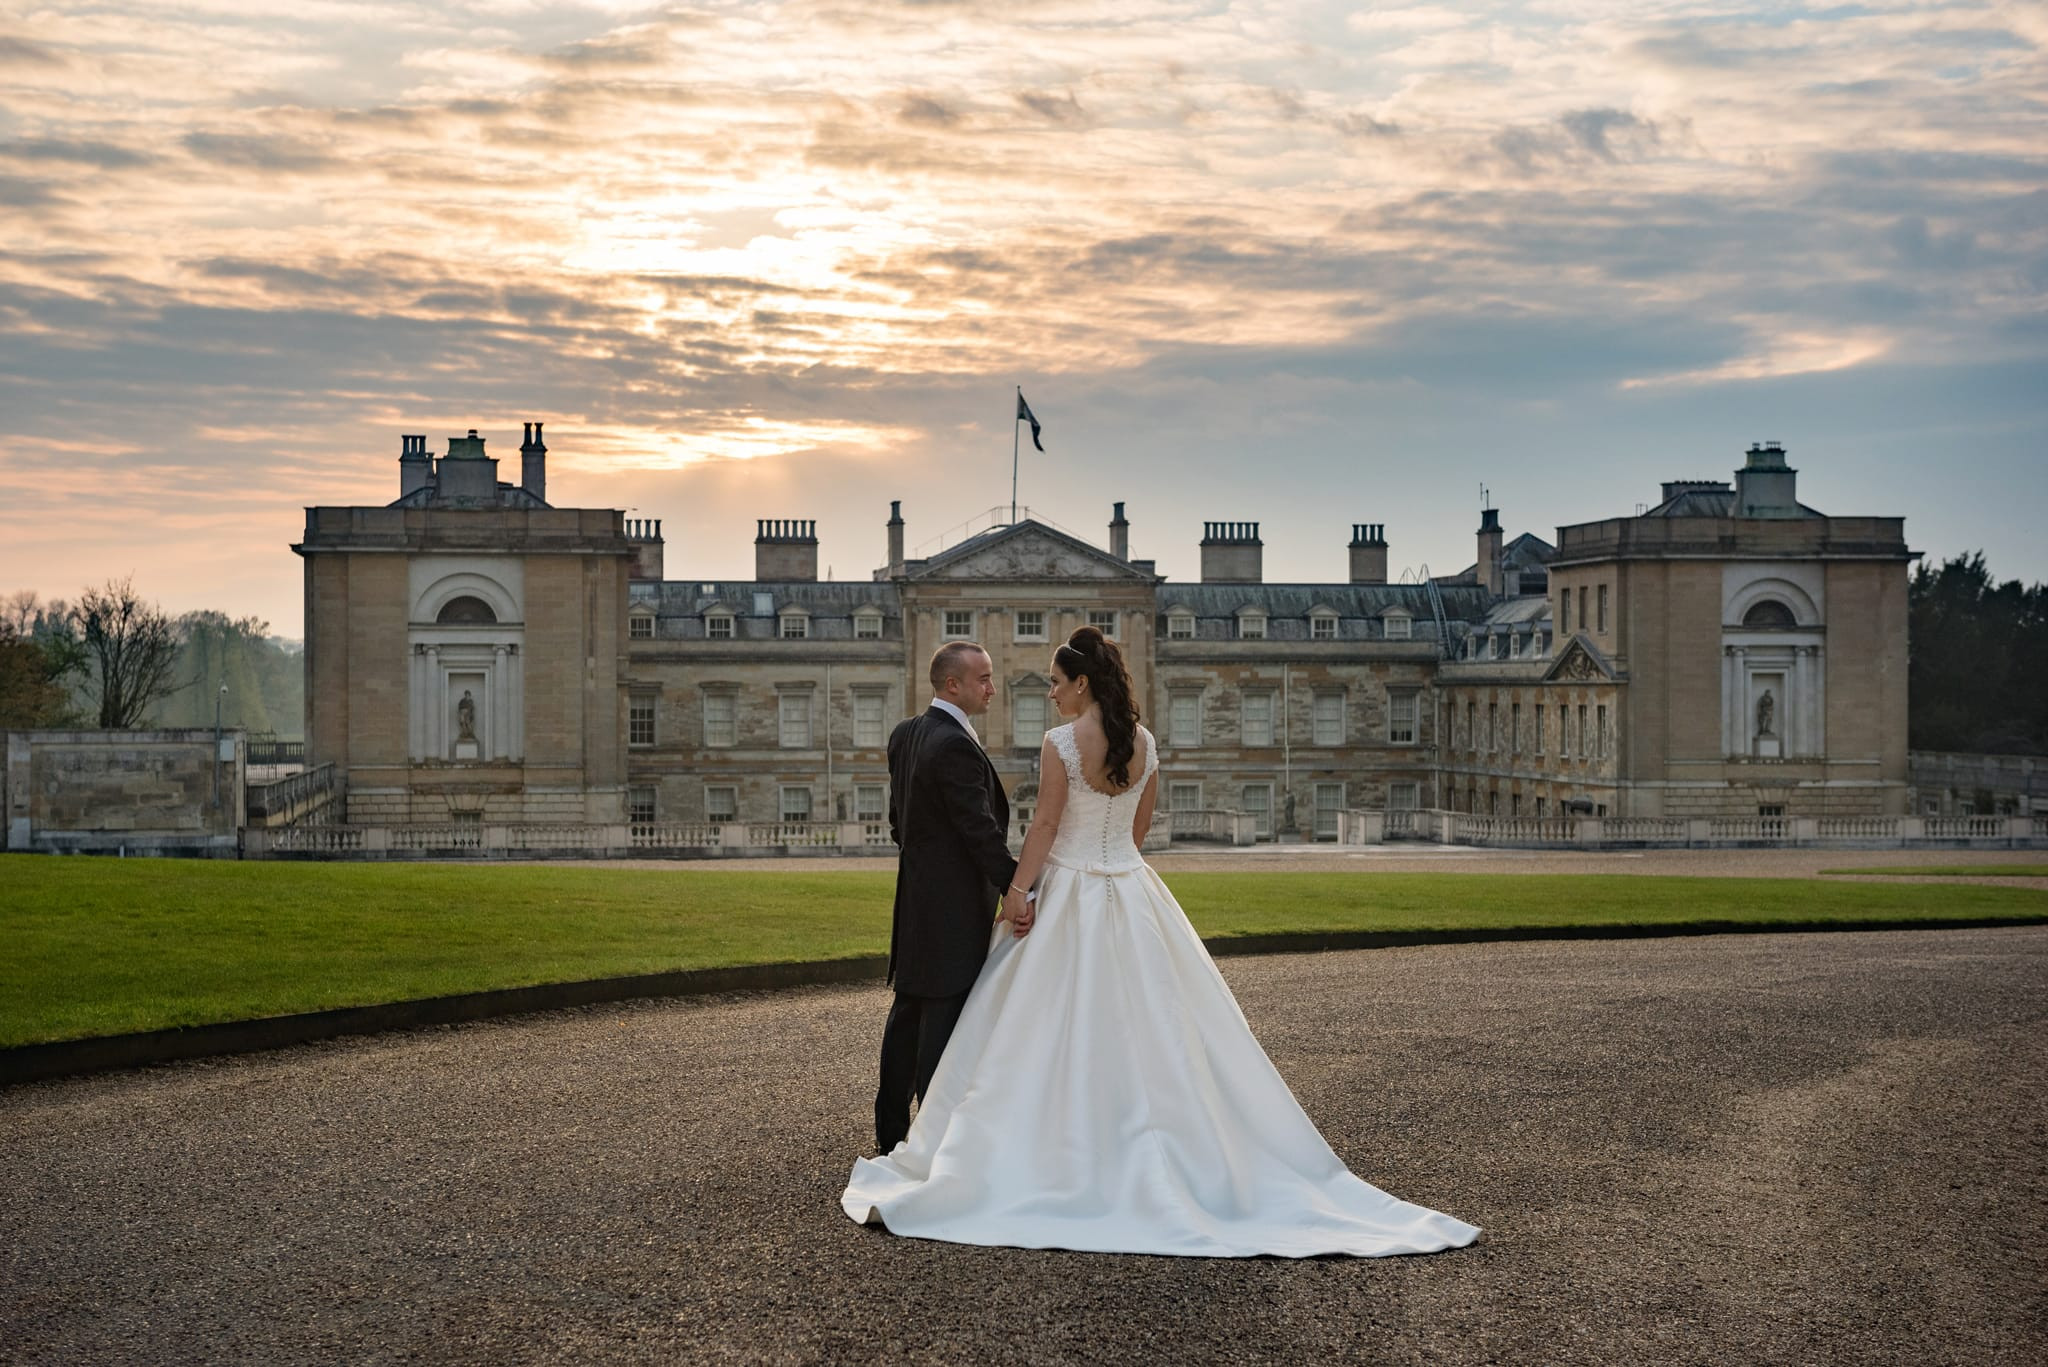 Bride and groom in front of Woburn Abbey at sunset